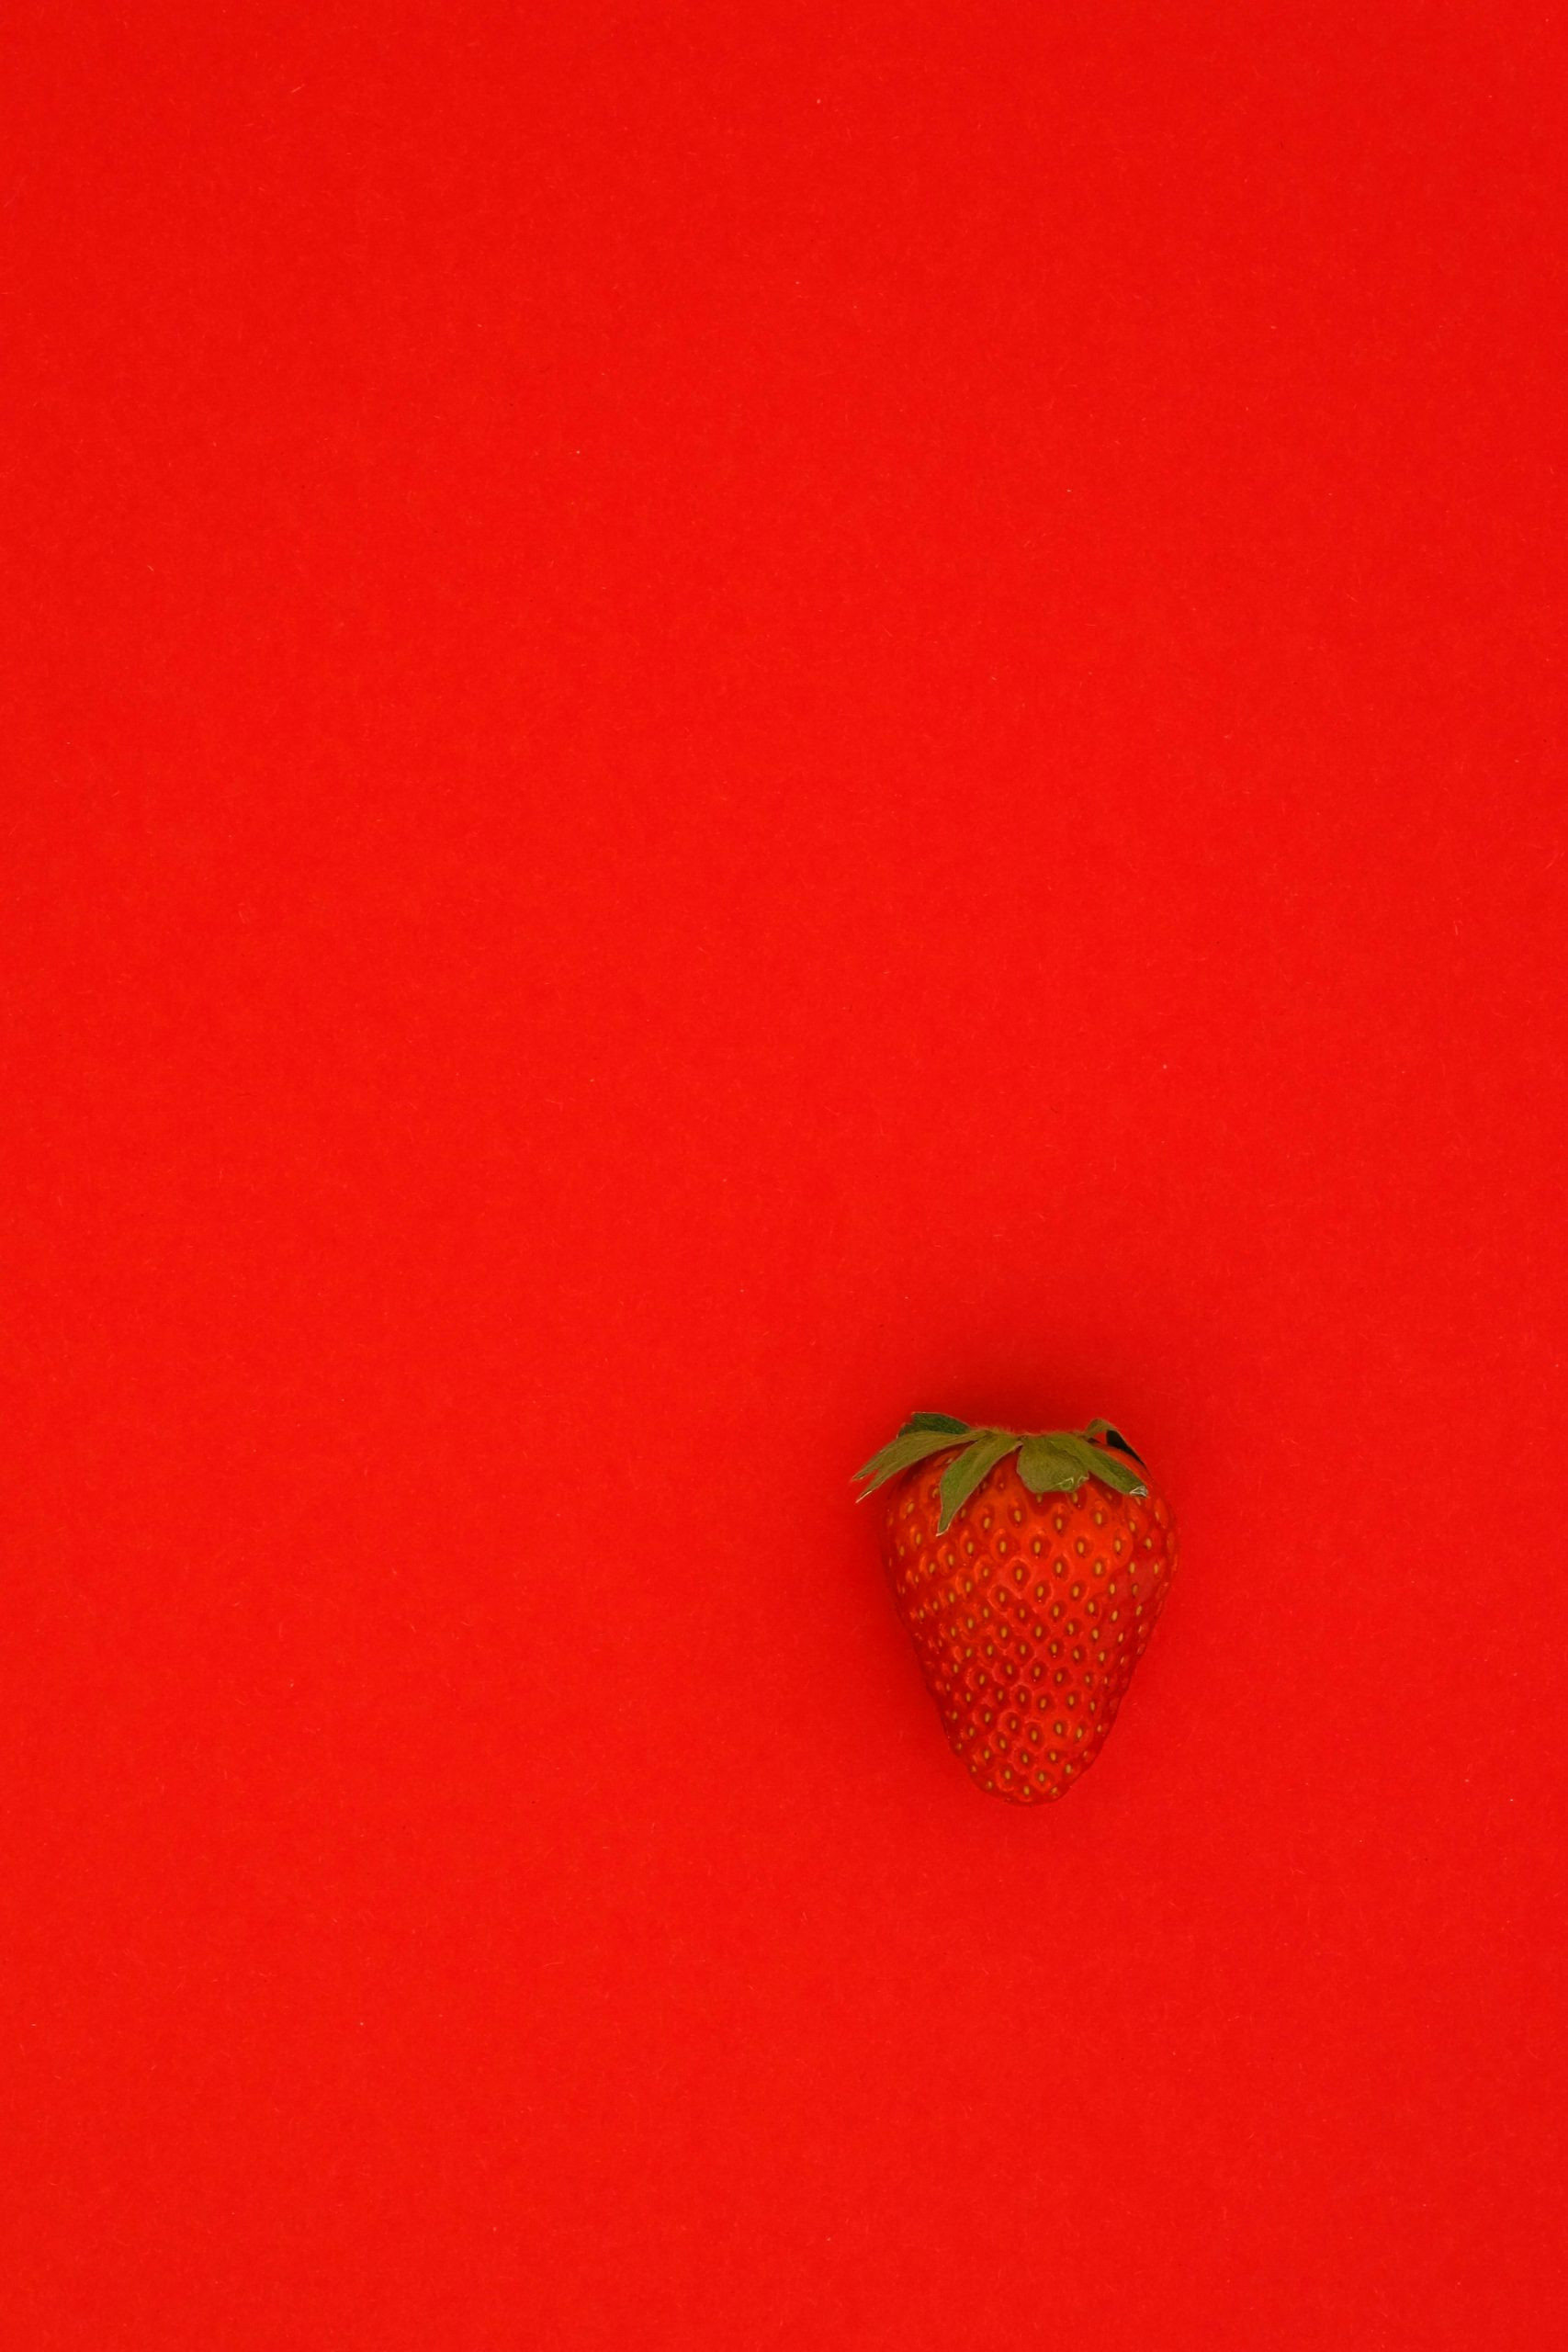 Red Wallpaper photo images download 2021